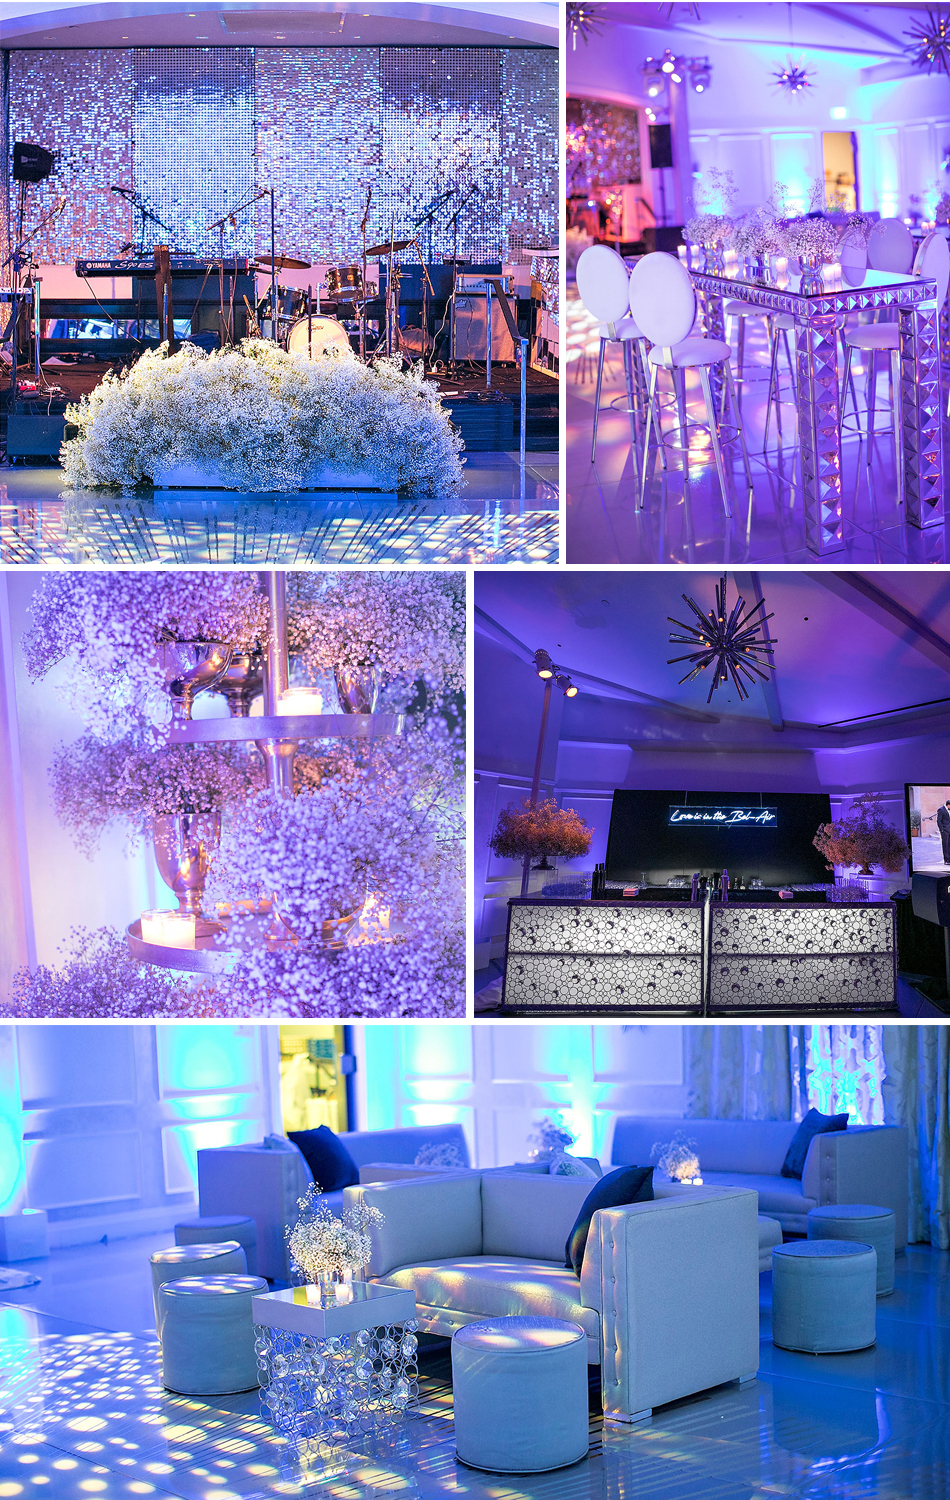 internationaleventcompany.com | International Event Company Los Angeles Wedding Planner and Designer | Weddings at Hotel Bel Air | Luxury Event Planners in Southern California _ (4).jpg